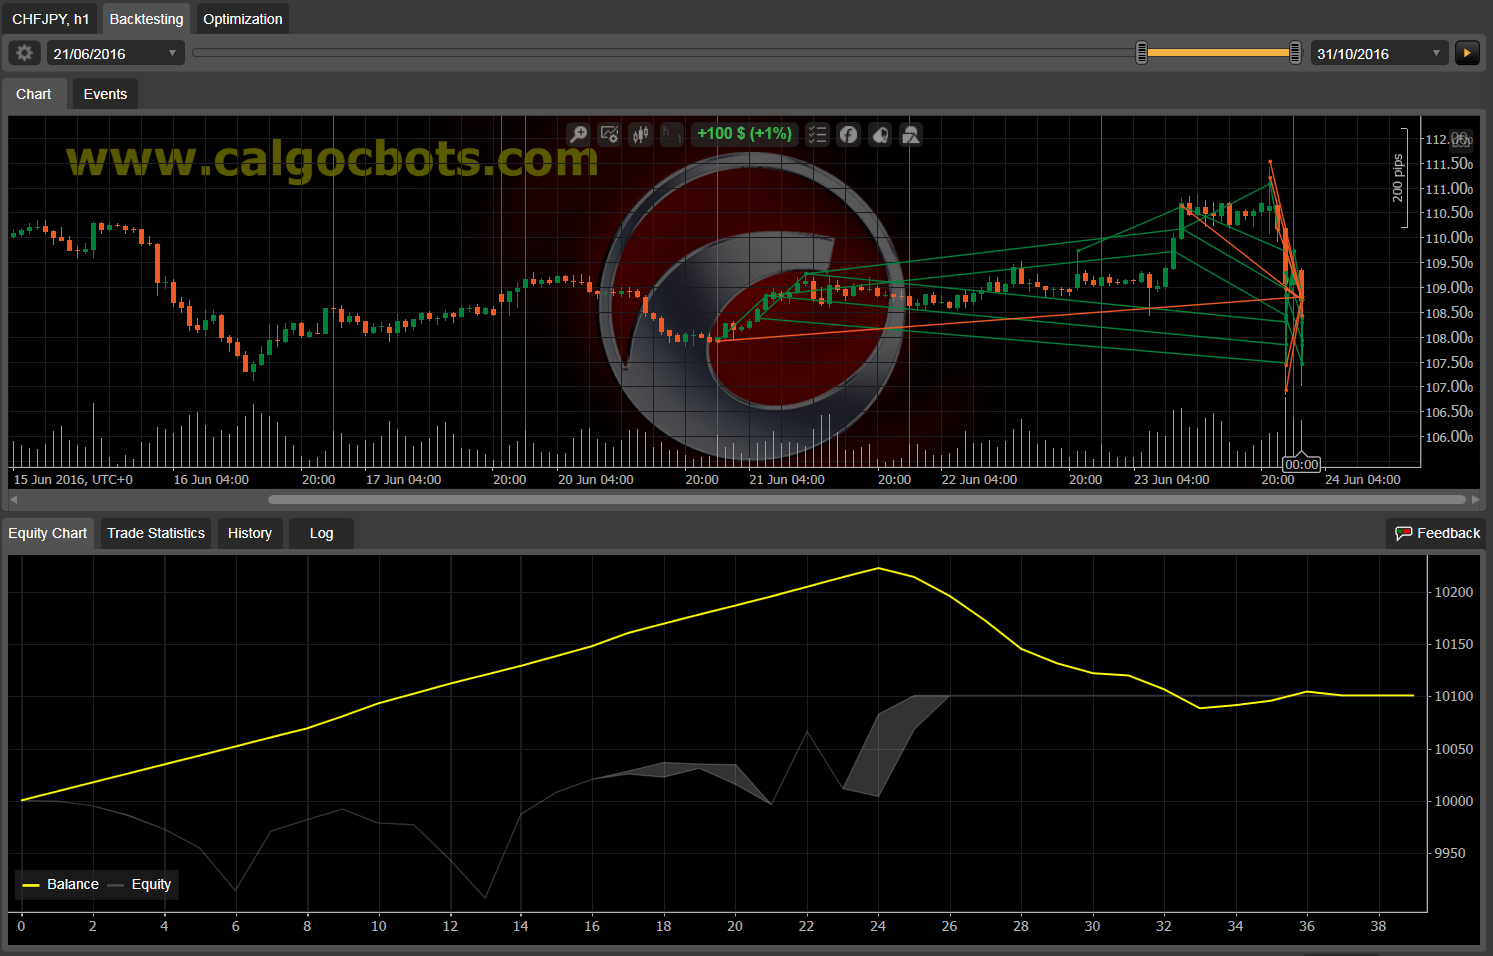 Dual Grid Hedge CHF JPY 1h cAlgo cBots cTrader 1k 100 45 90 - 11 c